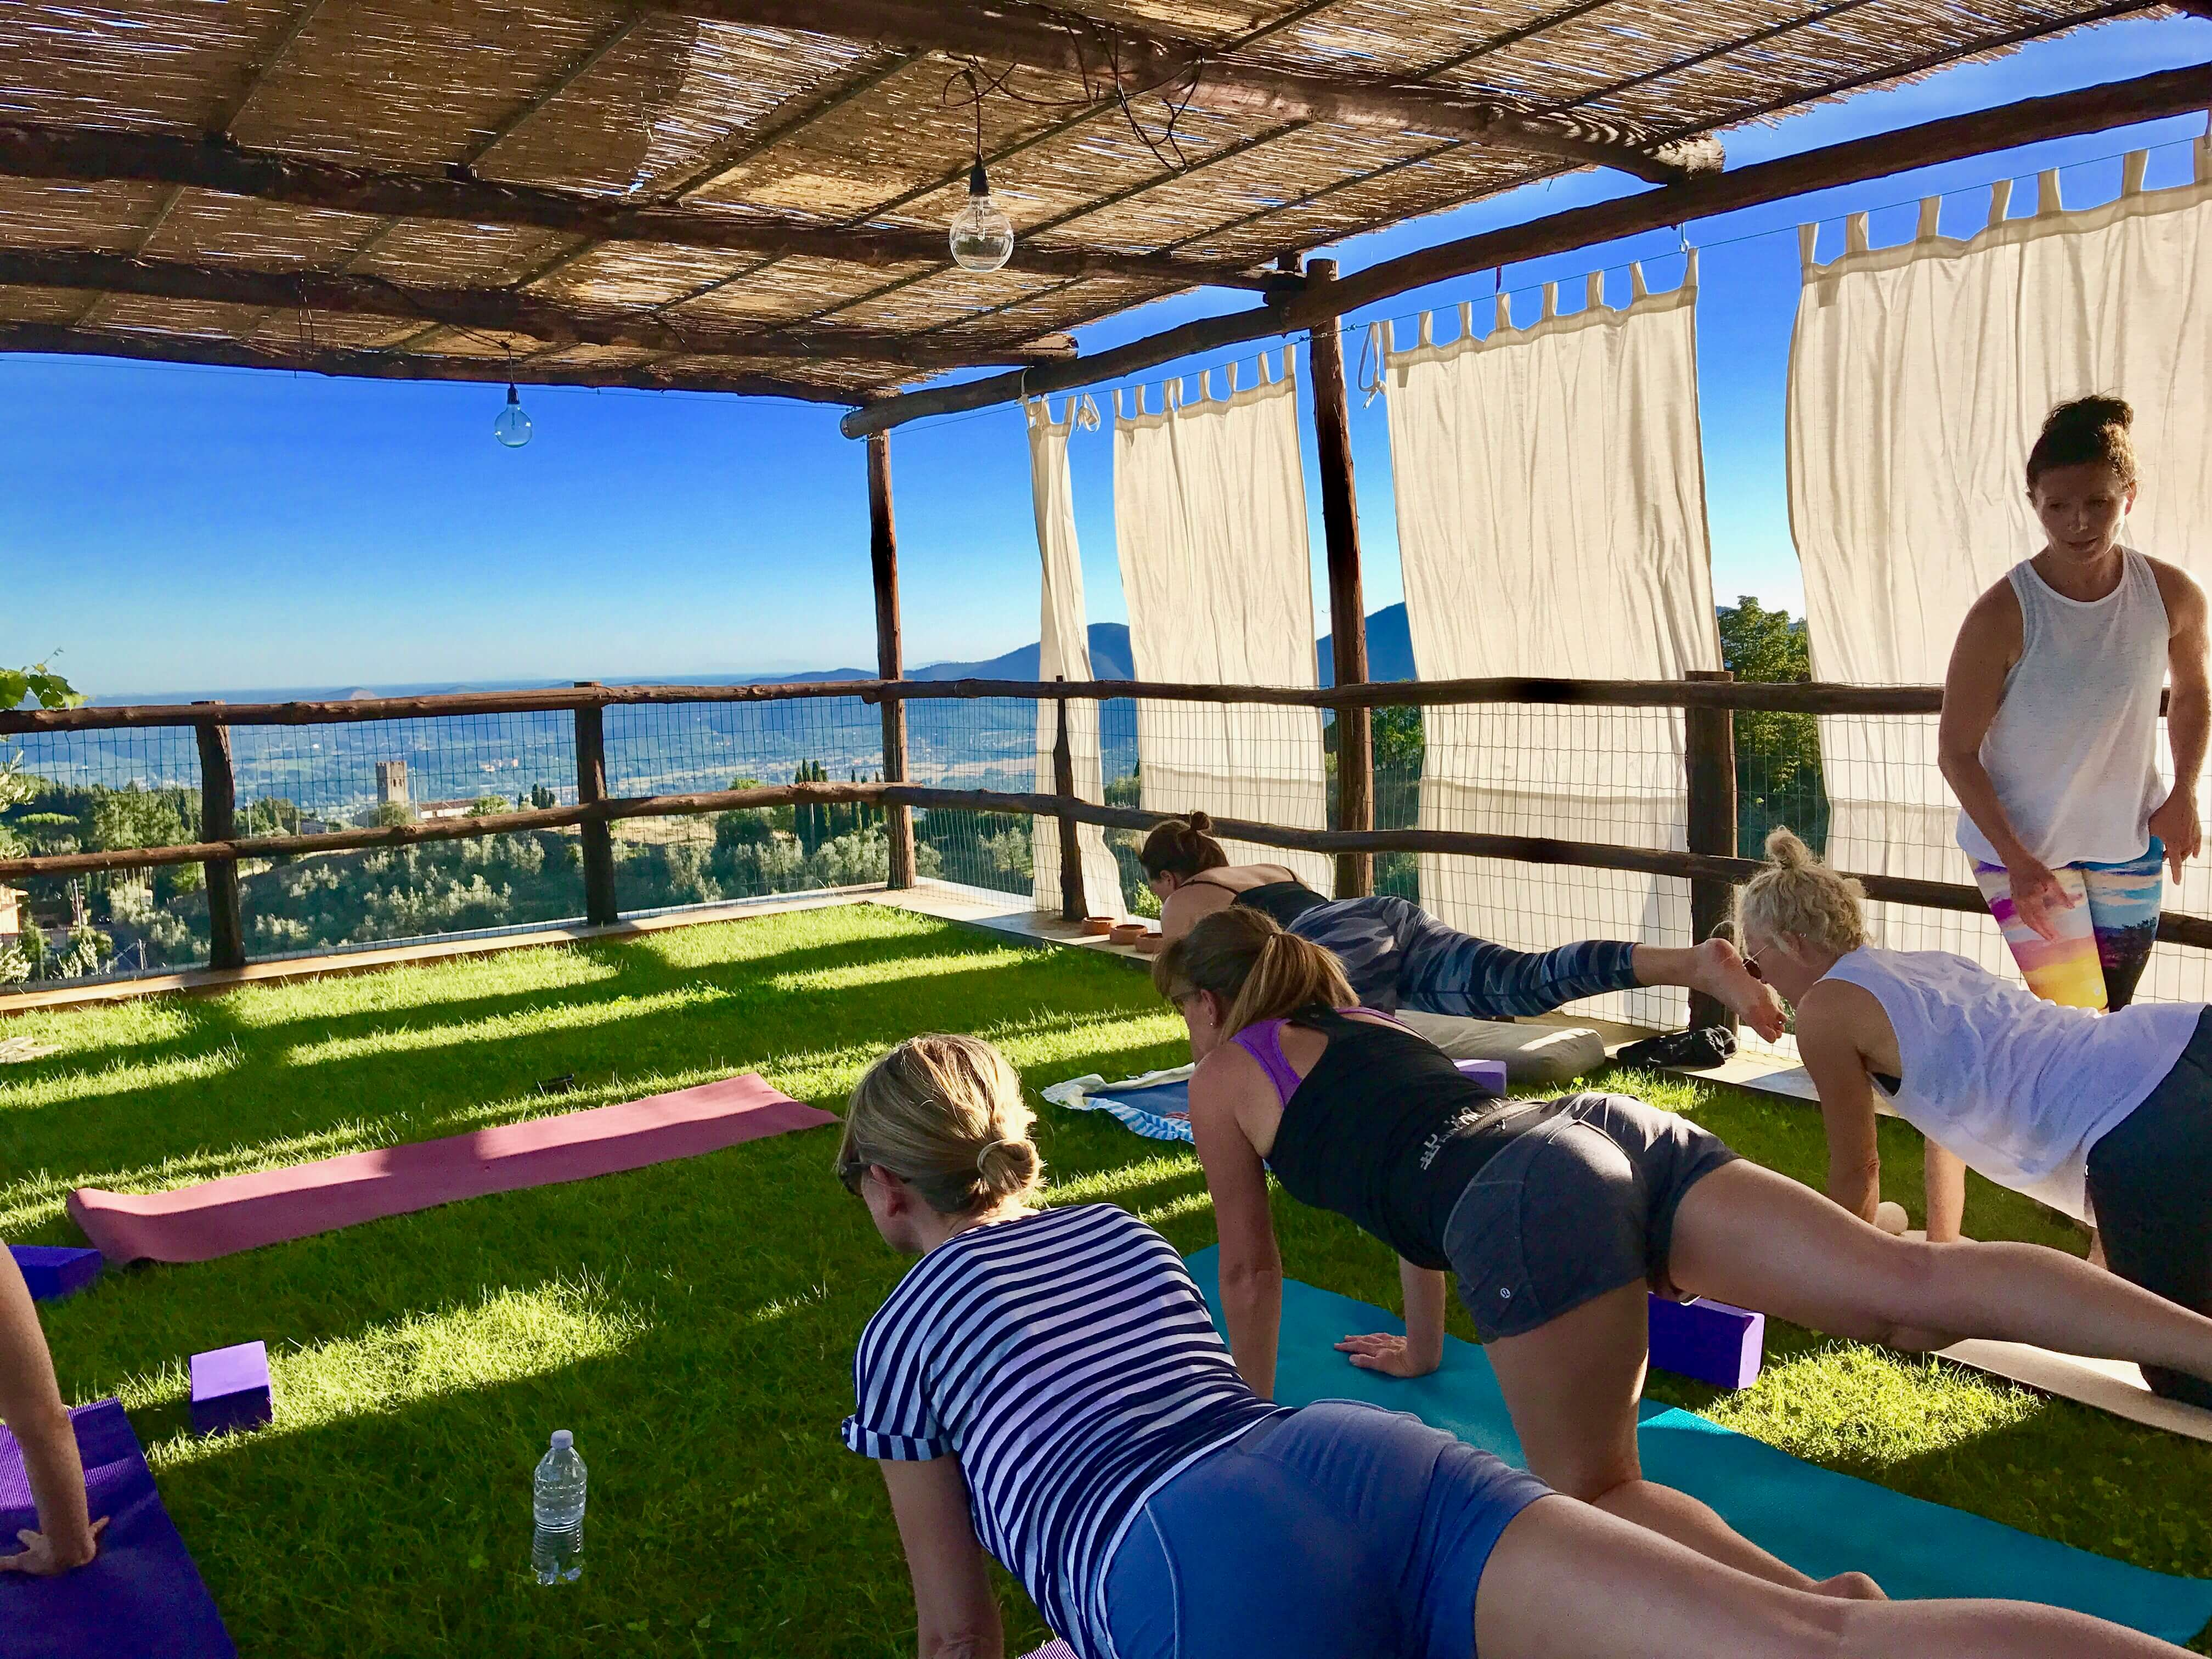 Yoga at the outdoor deck overlooking vineyards and olive groves